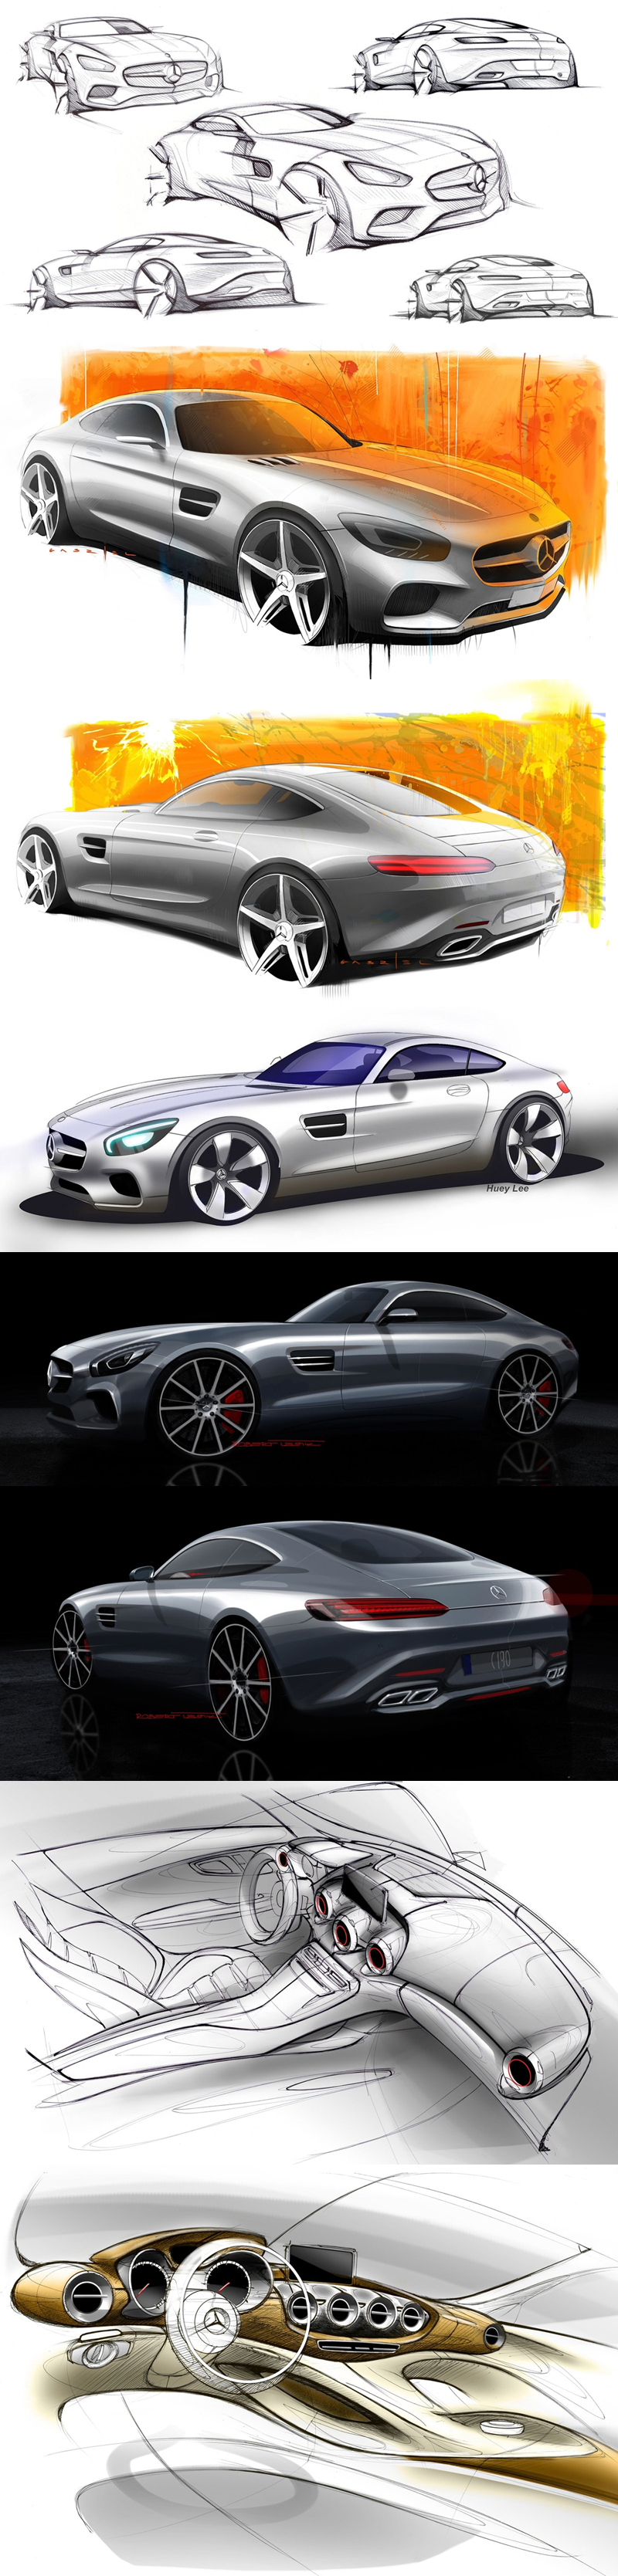 2015_08_Mercedes_Benz_AMG_GT_S_Design